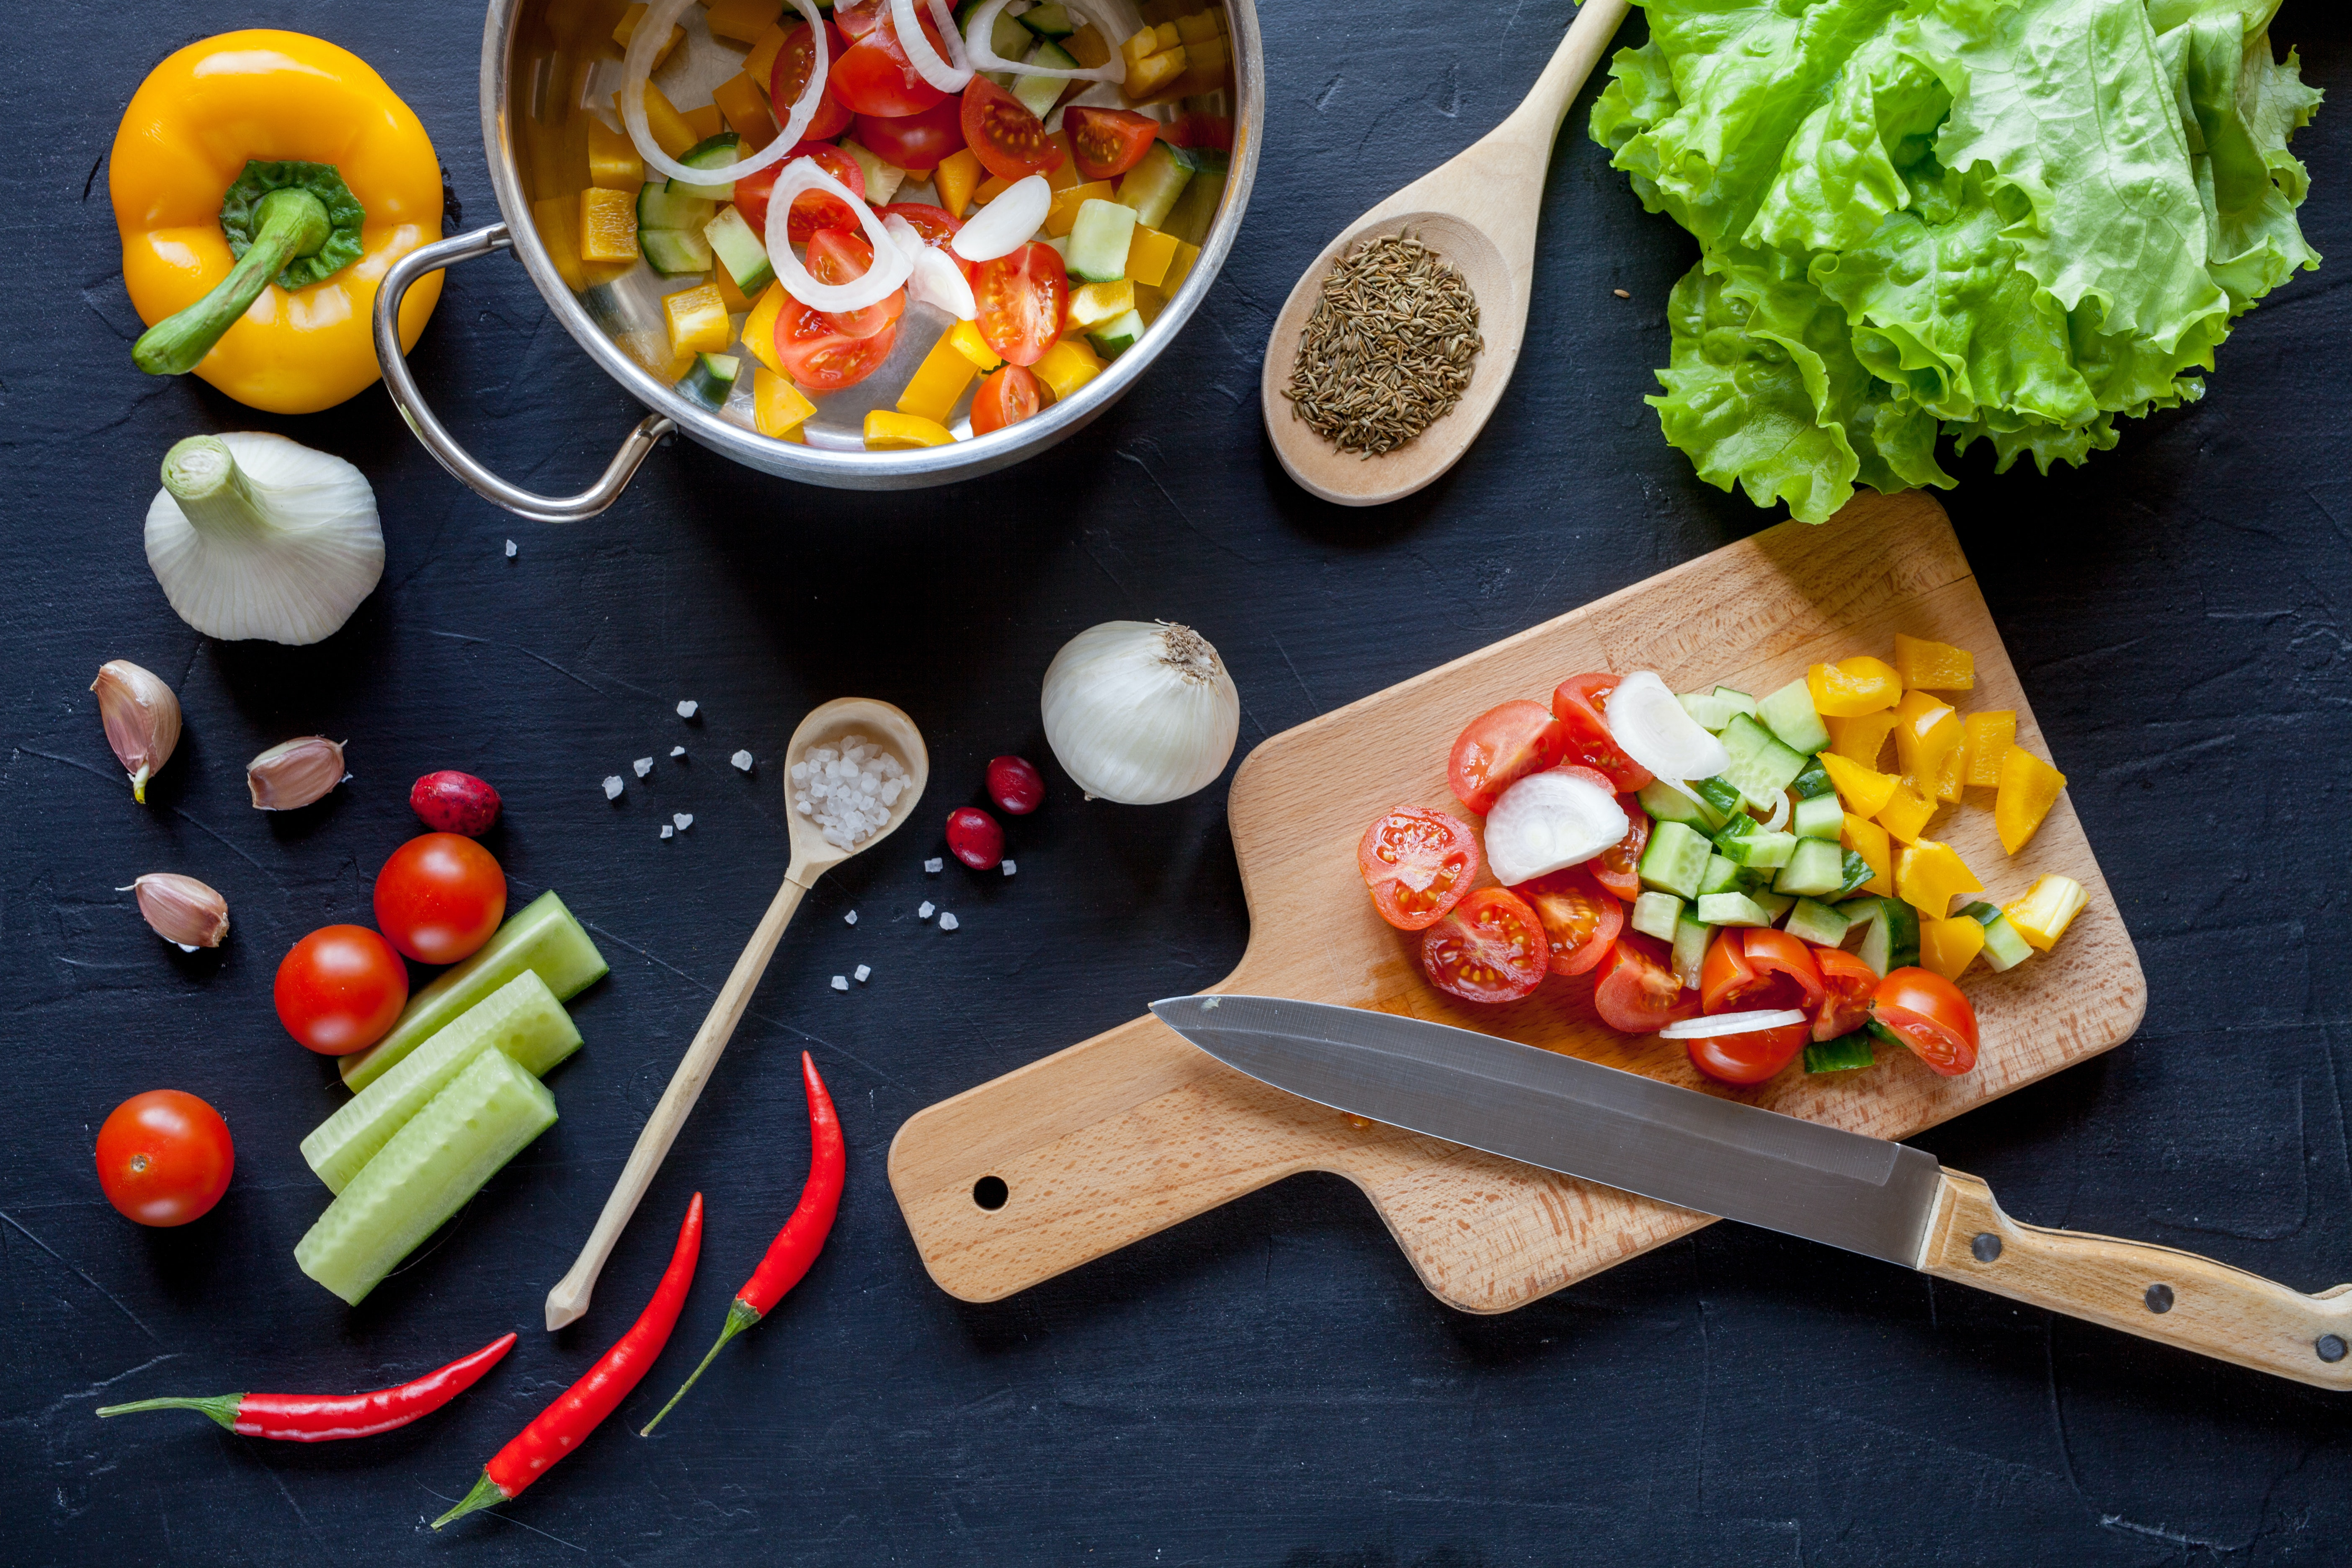 7 Plant-Based Diet Tips That Will Make Adopting The Wellness Trend Easier